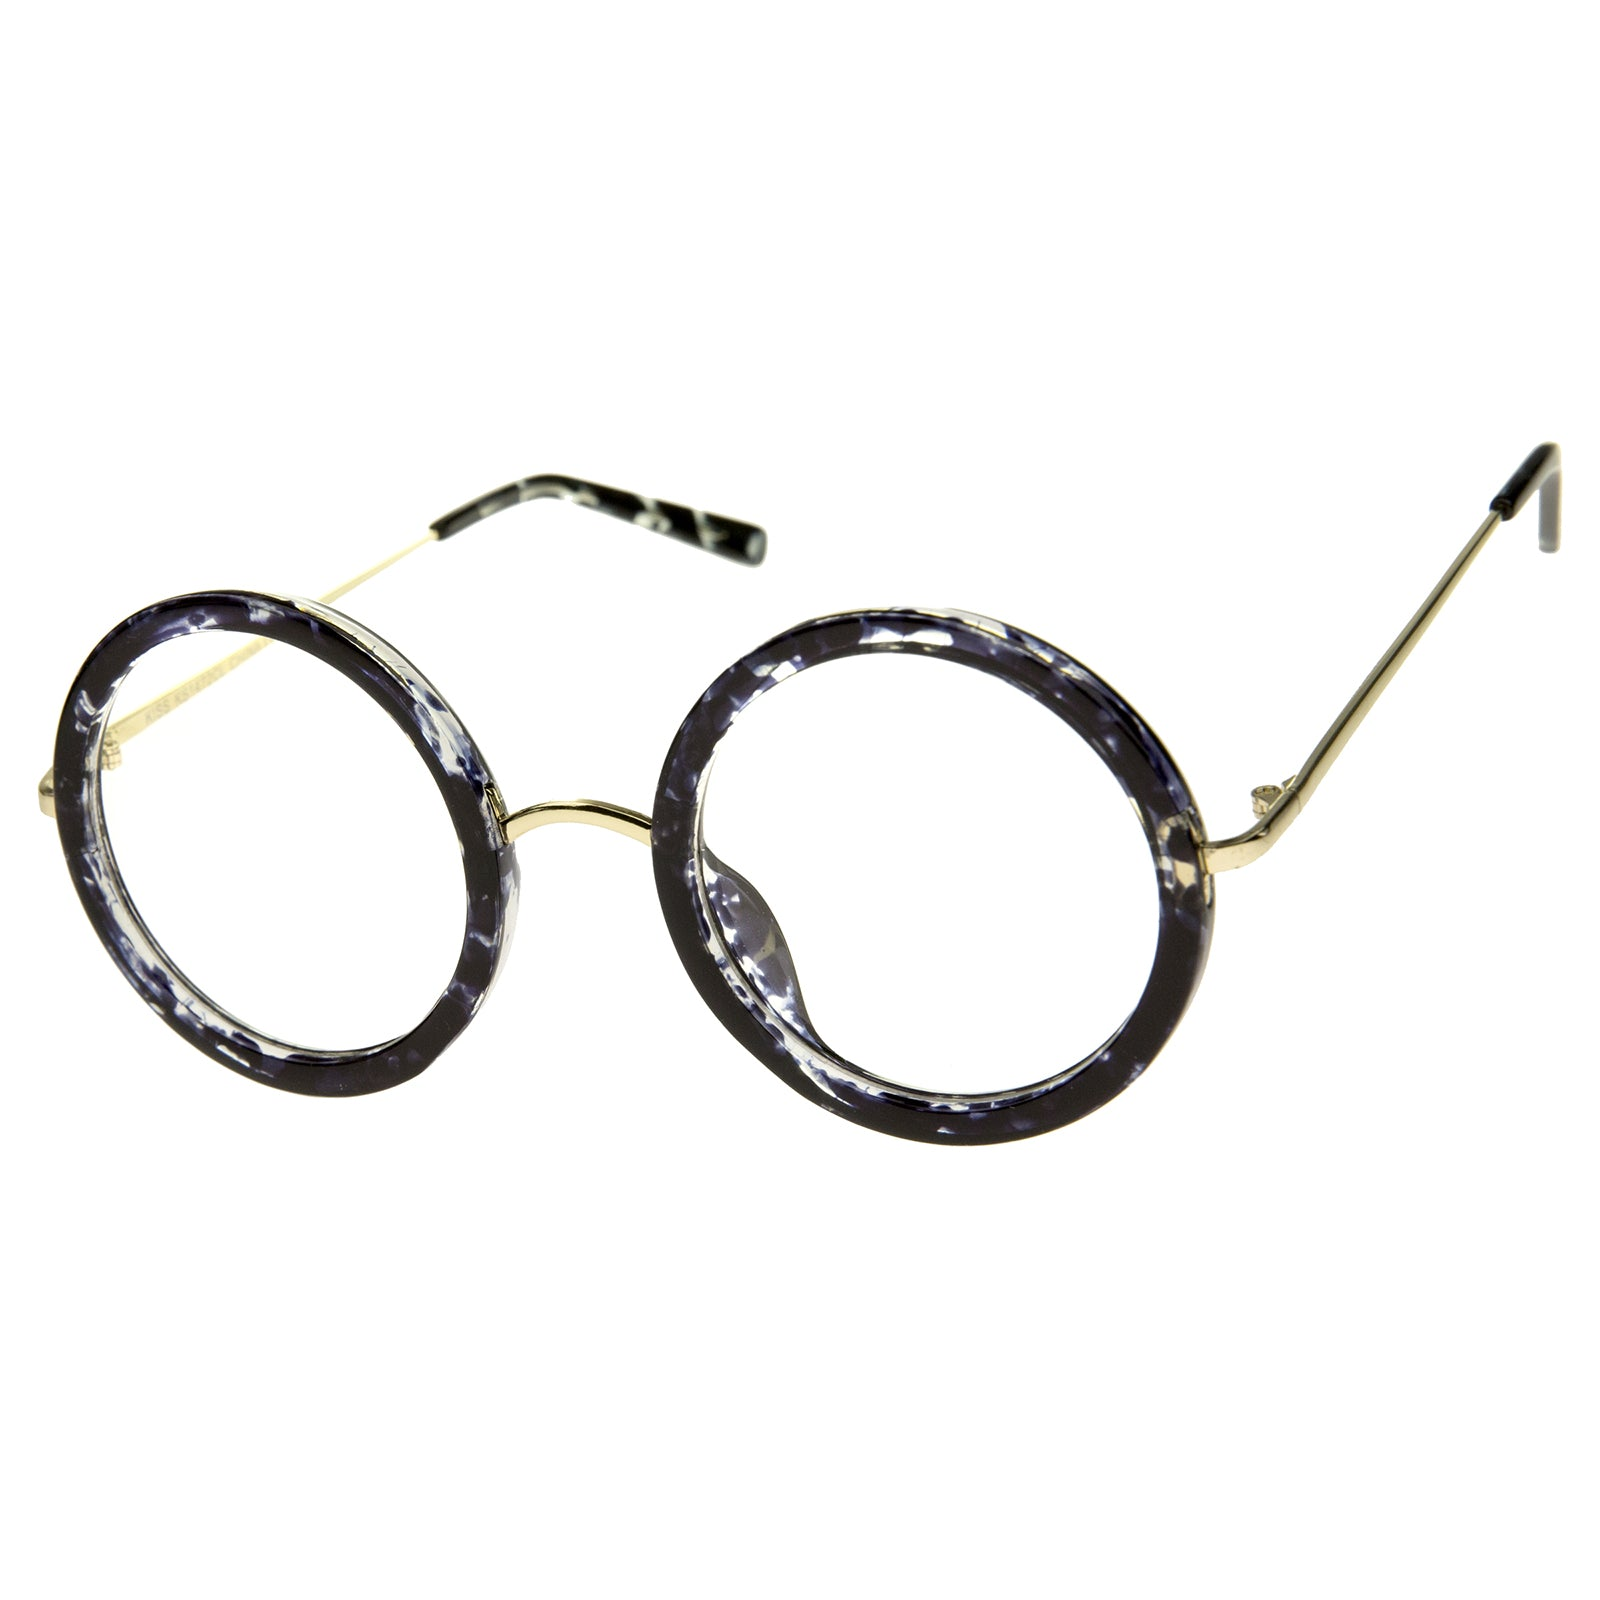 Lennon Retro Fashion Thick Frame Metal Temple Round Clear Lens Glasses 50mm - sunglass.la - 6